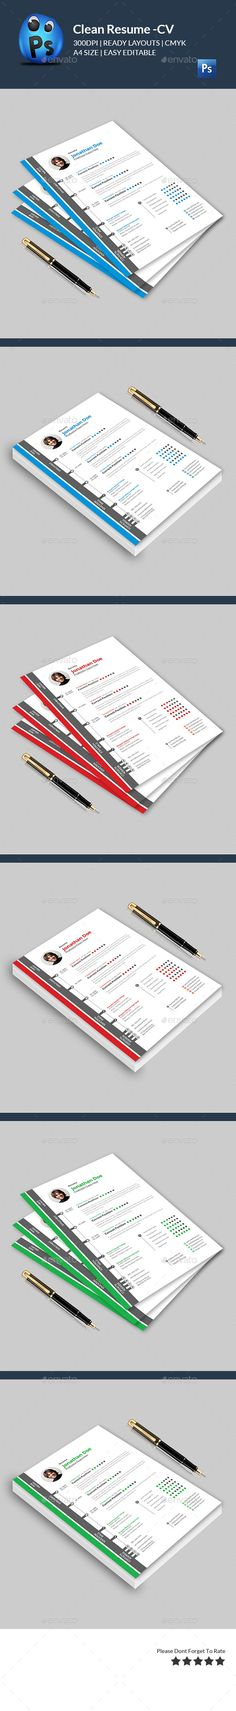 Clean Resume CV Resume cv, Graphics and Cv cover letter - cv and cover letter